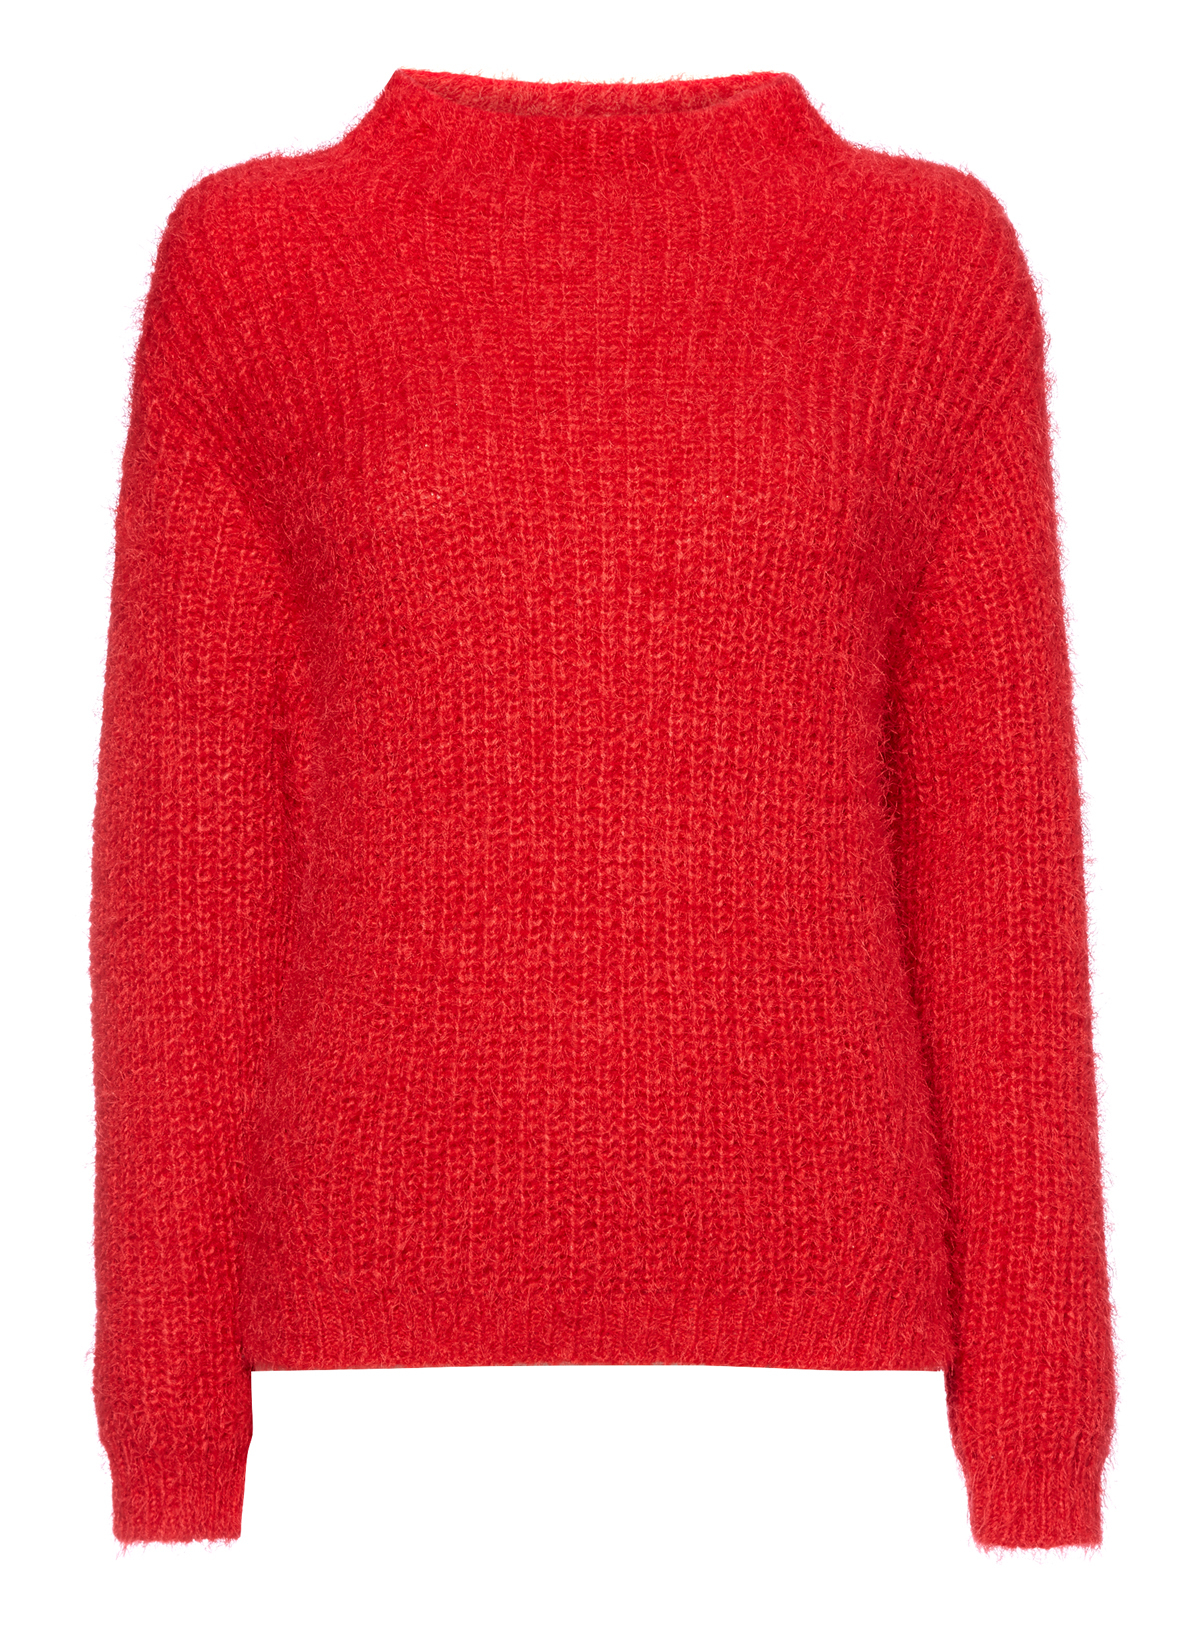 Womens Red Fluffy Knit Jumper | Tu clothing